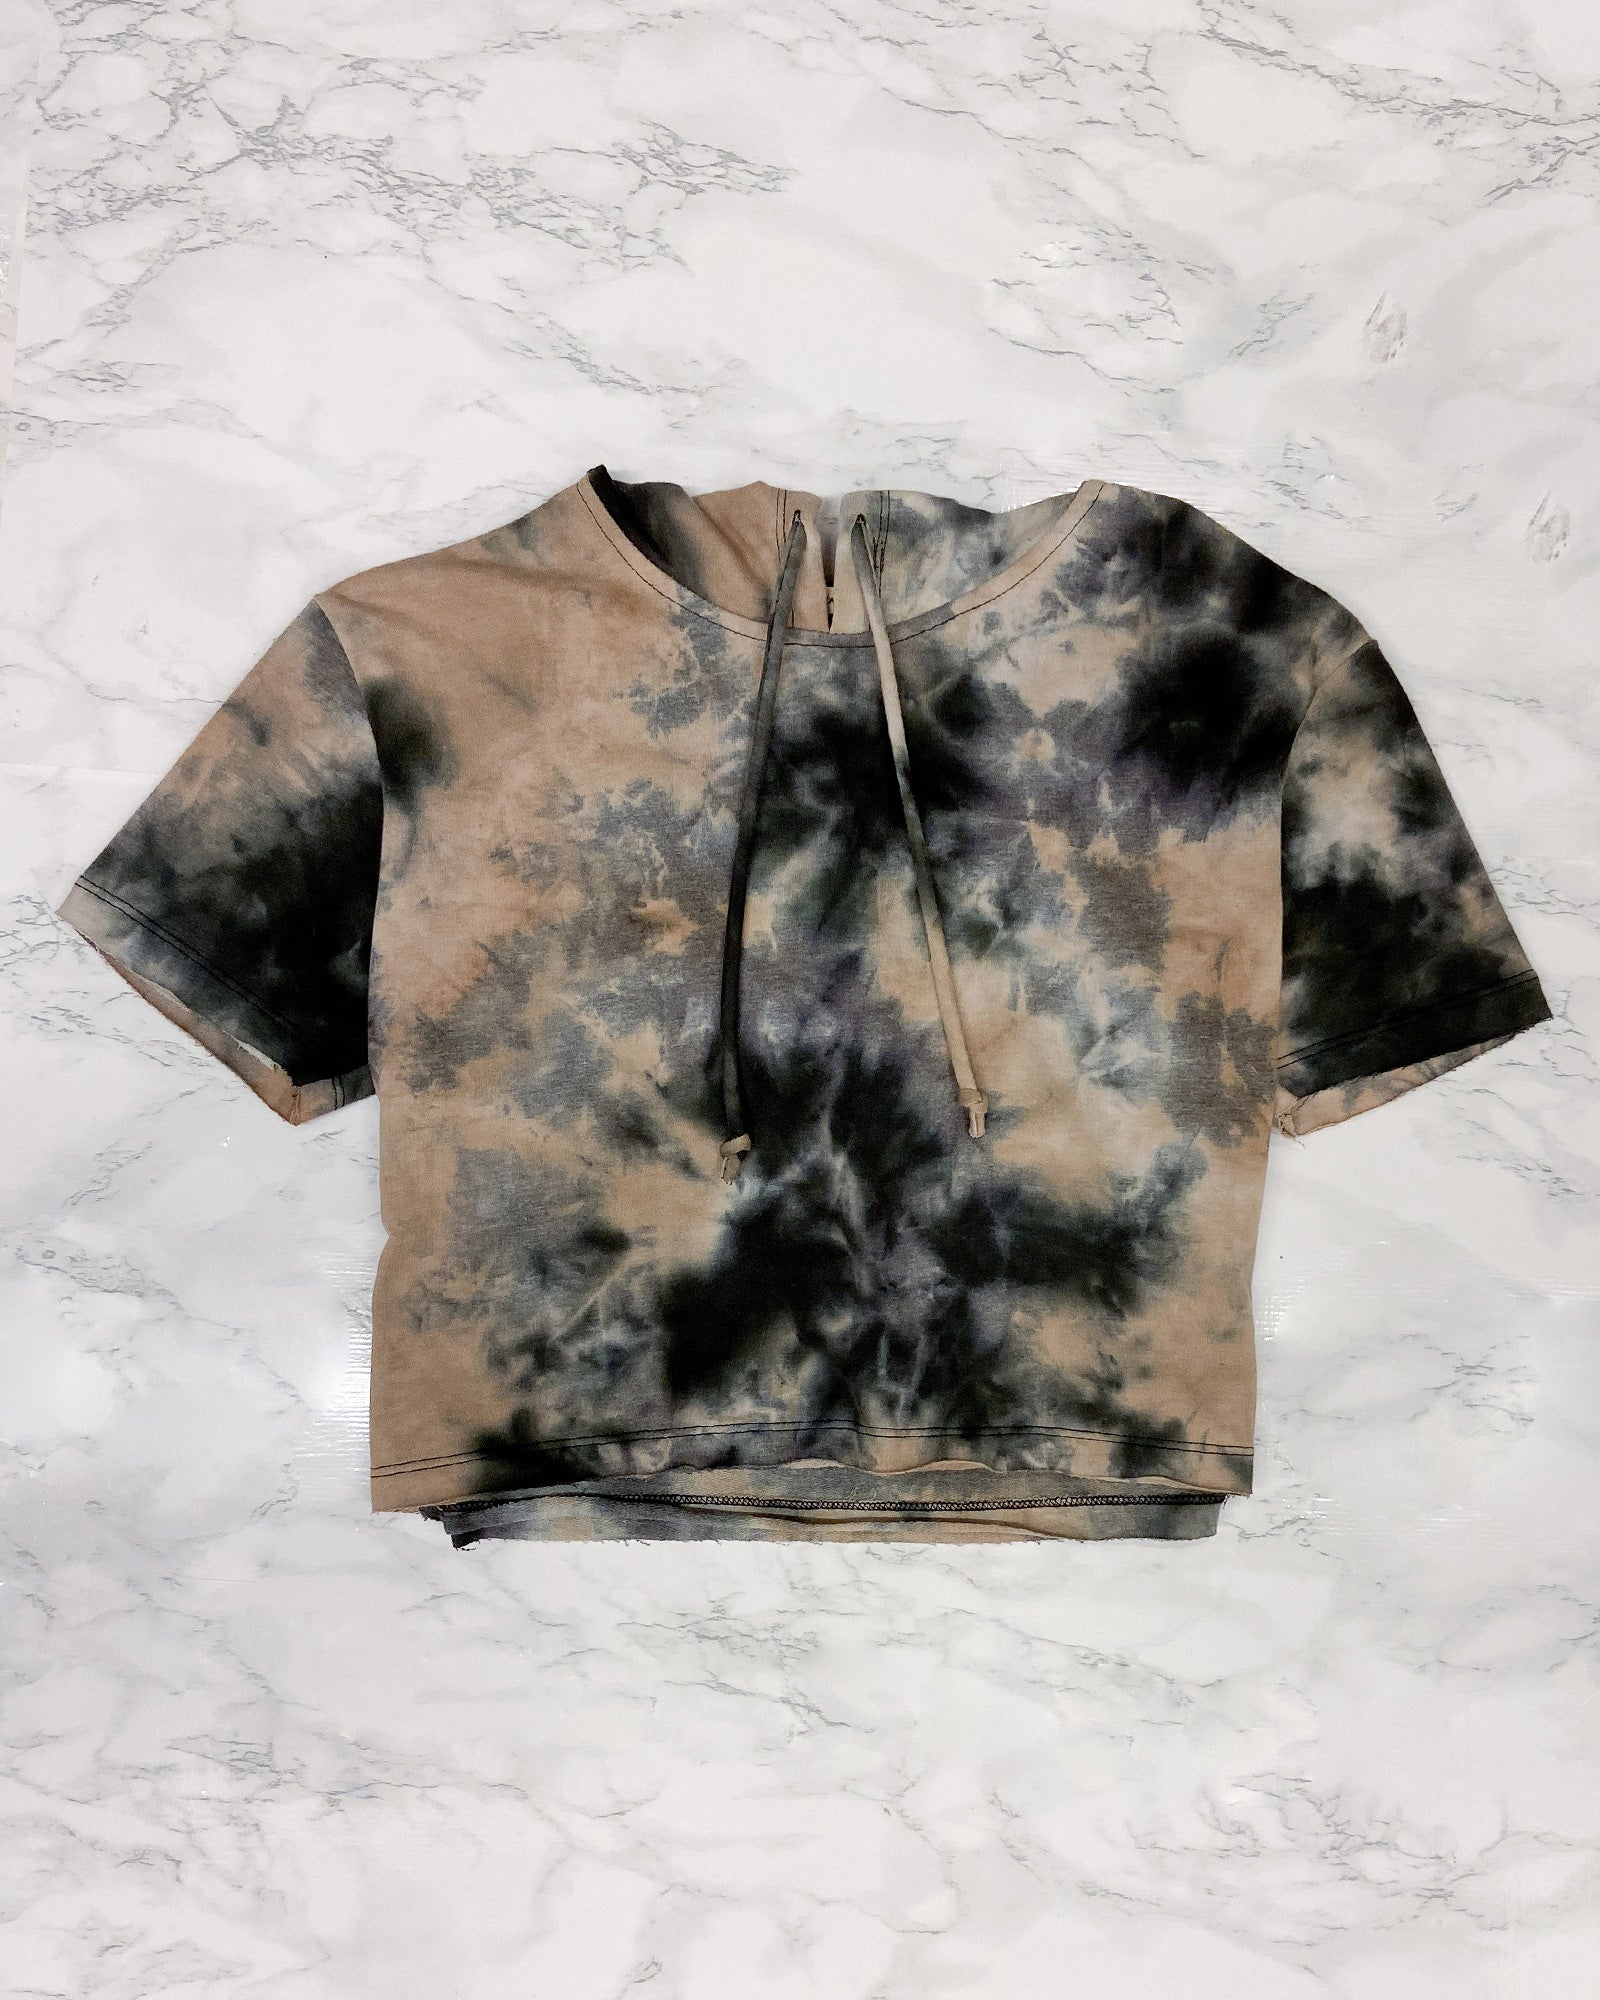 Fashion Q Shop Q Give Peace a Chance Tie Dye Hoodie Crop Top Black FH35281T24